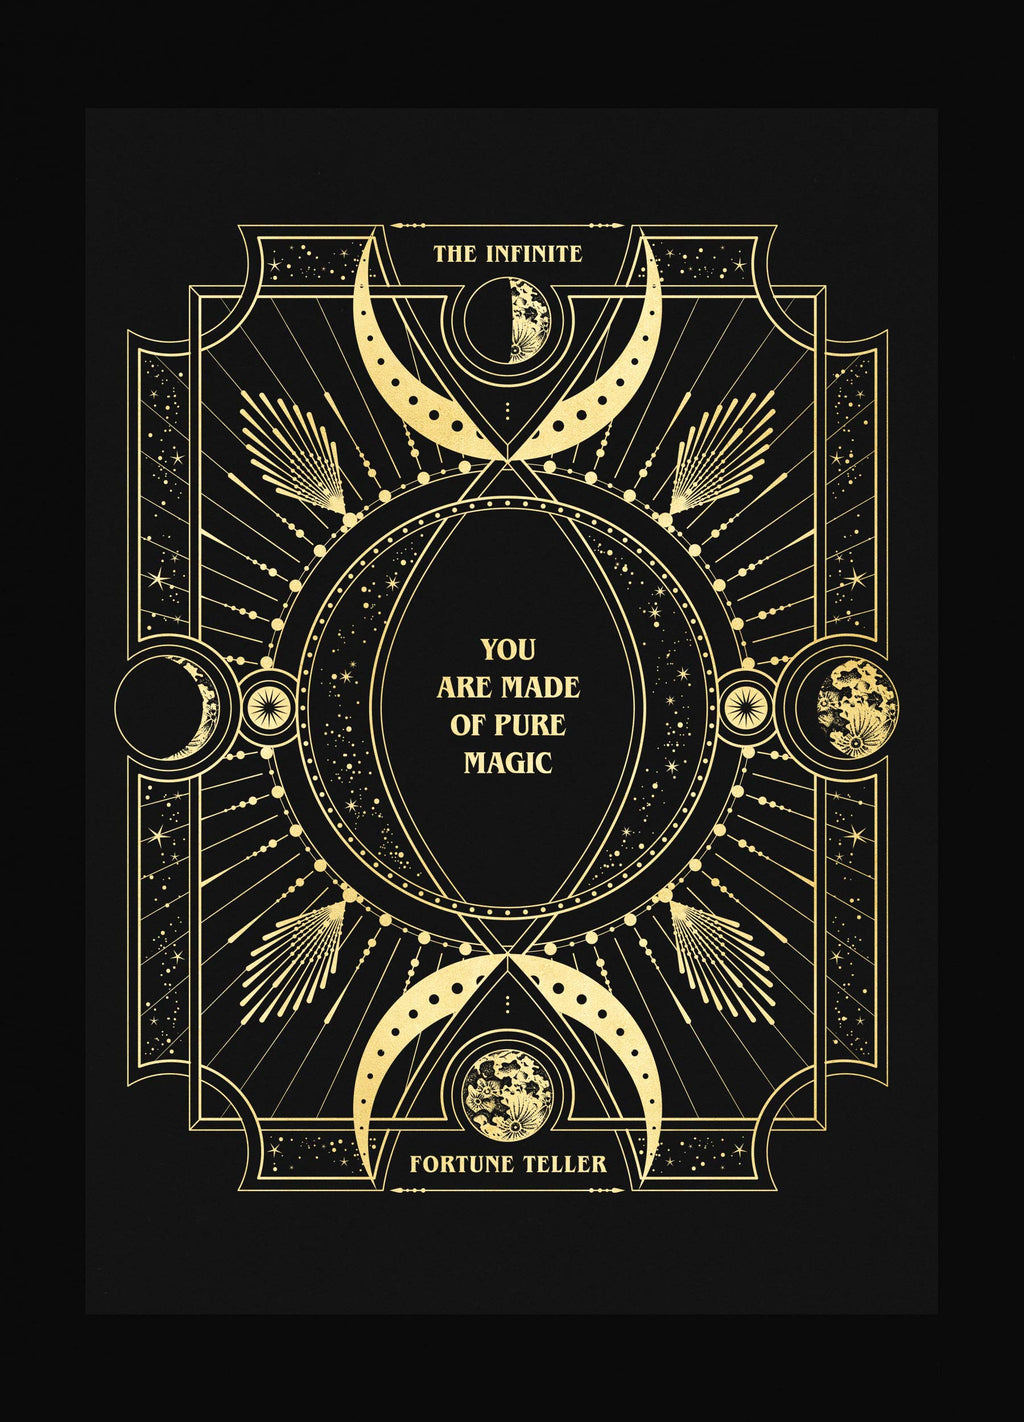 Infinite Fortune Teller card personalised art print in gold foil and black paper with stars and moon by Cocorrina